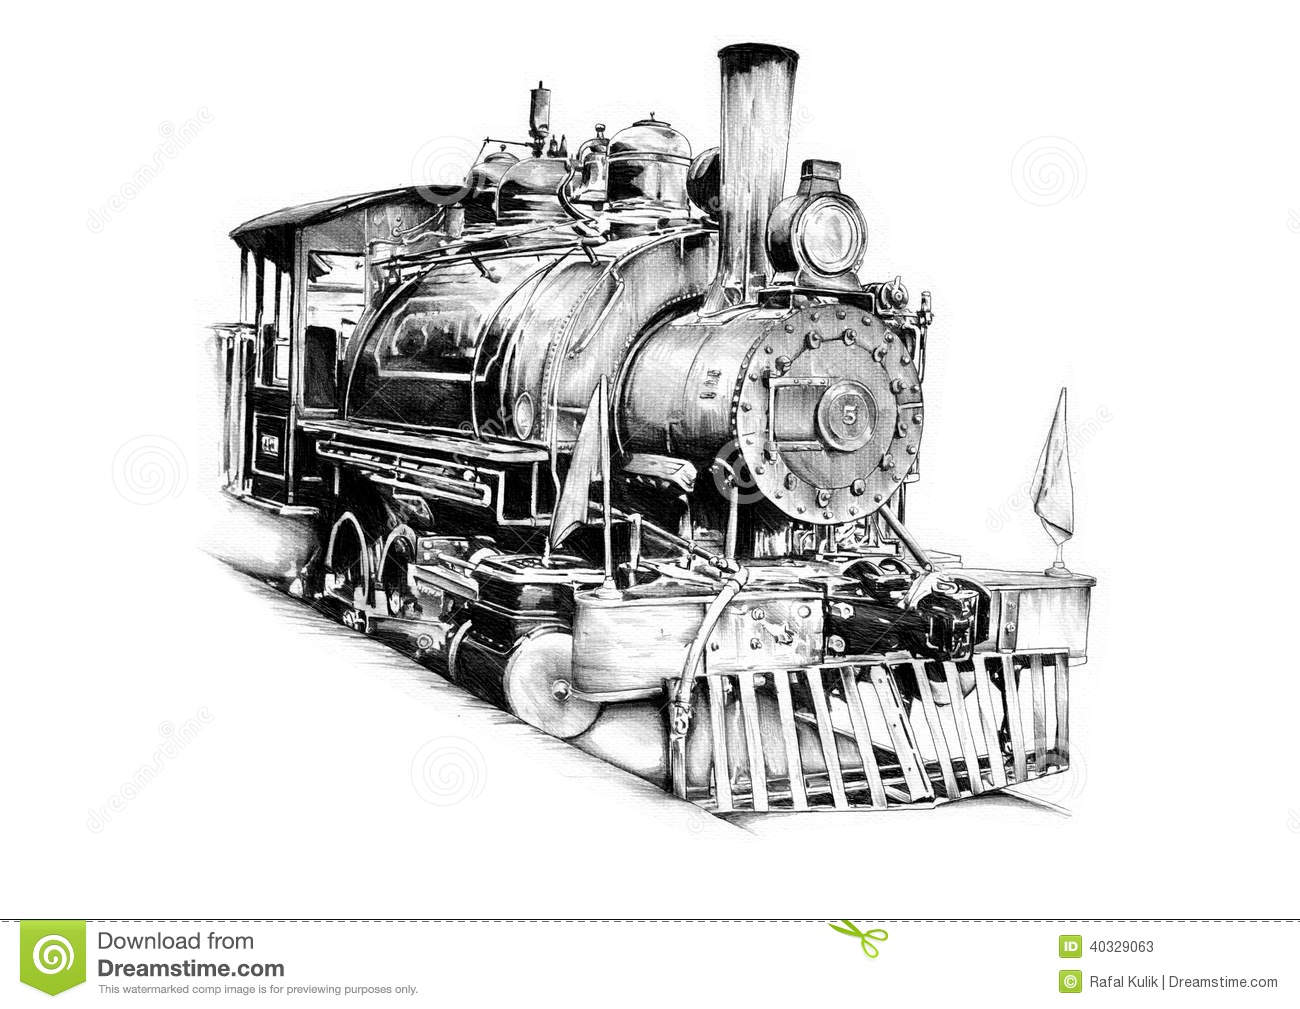 Parts Of Steam Engine Locomotive Diagram Wiring Diagrams For Dummies Train Diesel Images Gallery